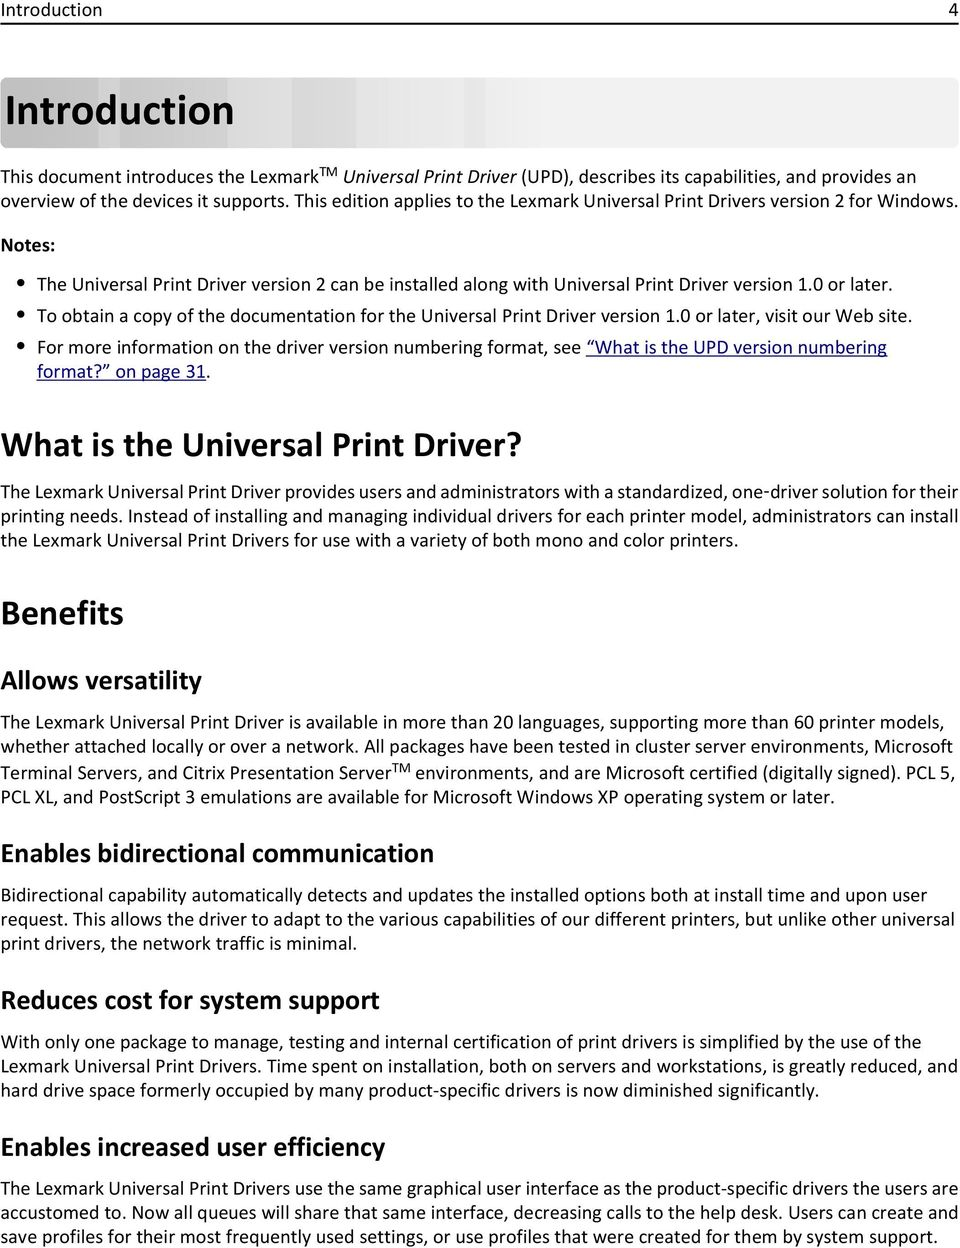 Contents 2  Introduction   4  What is the Universal Print